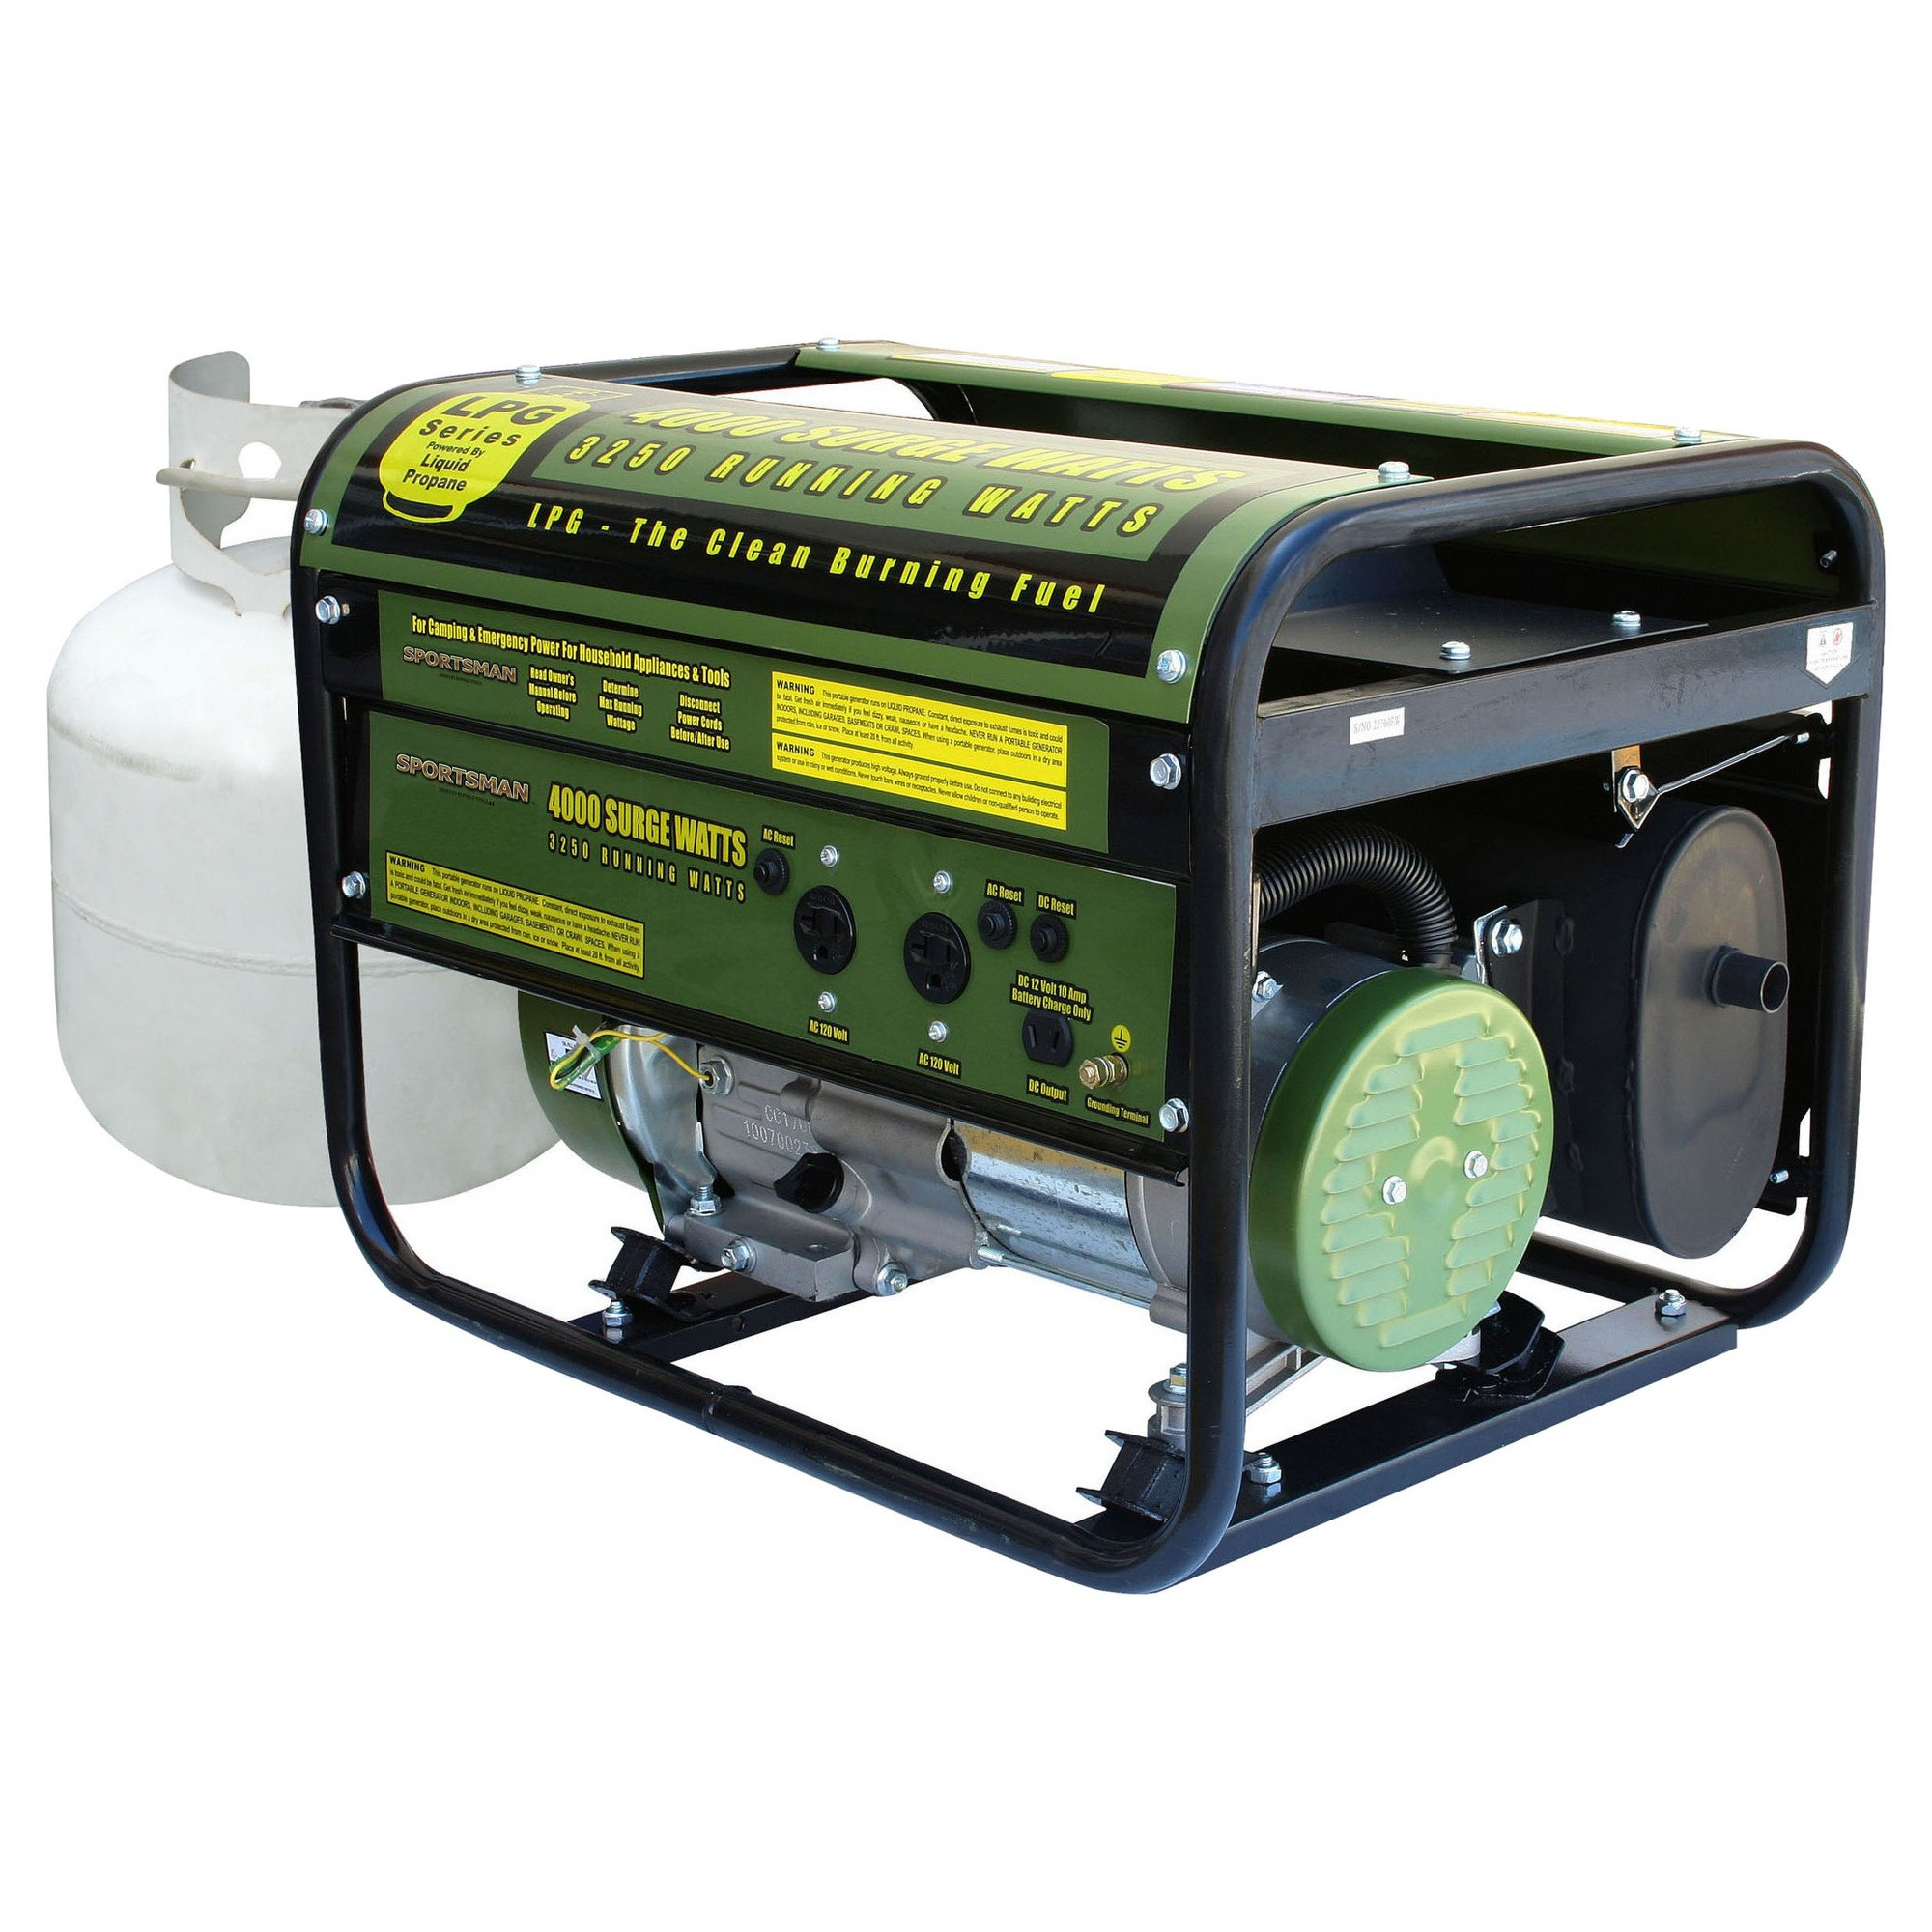 Propane 4000 Watt Portable Dual Fuel Generator Carb Approved Green Champion Wiring Sportsman